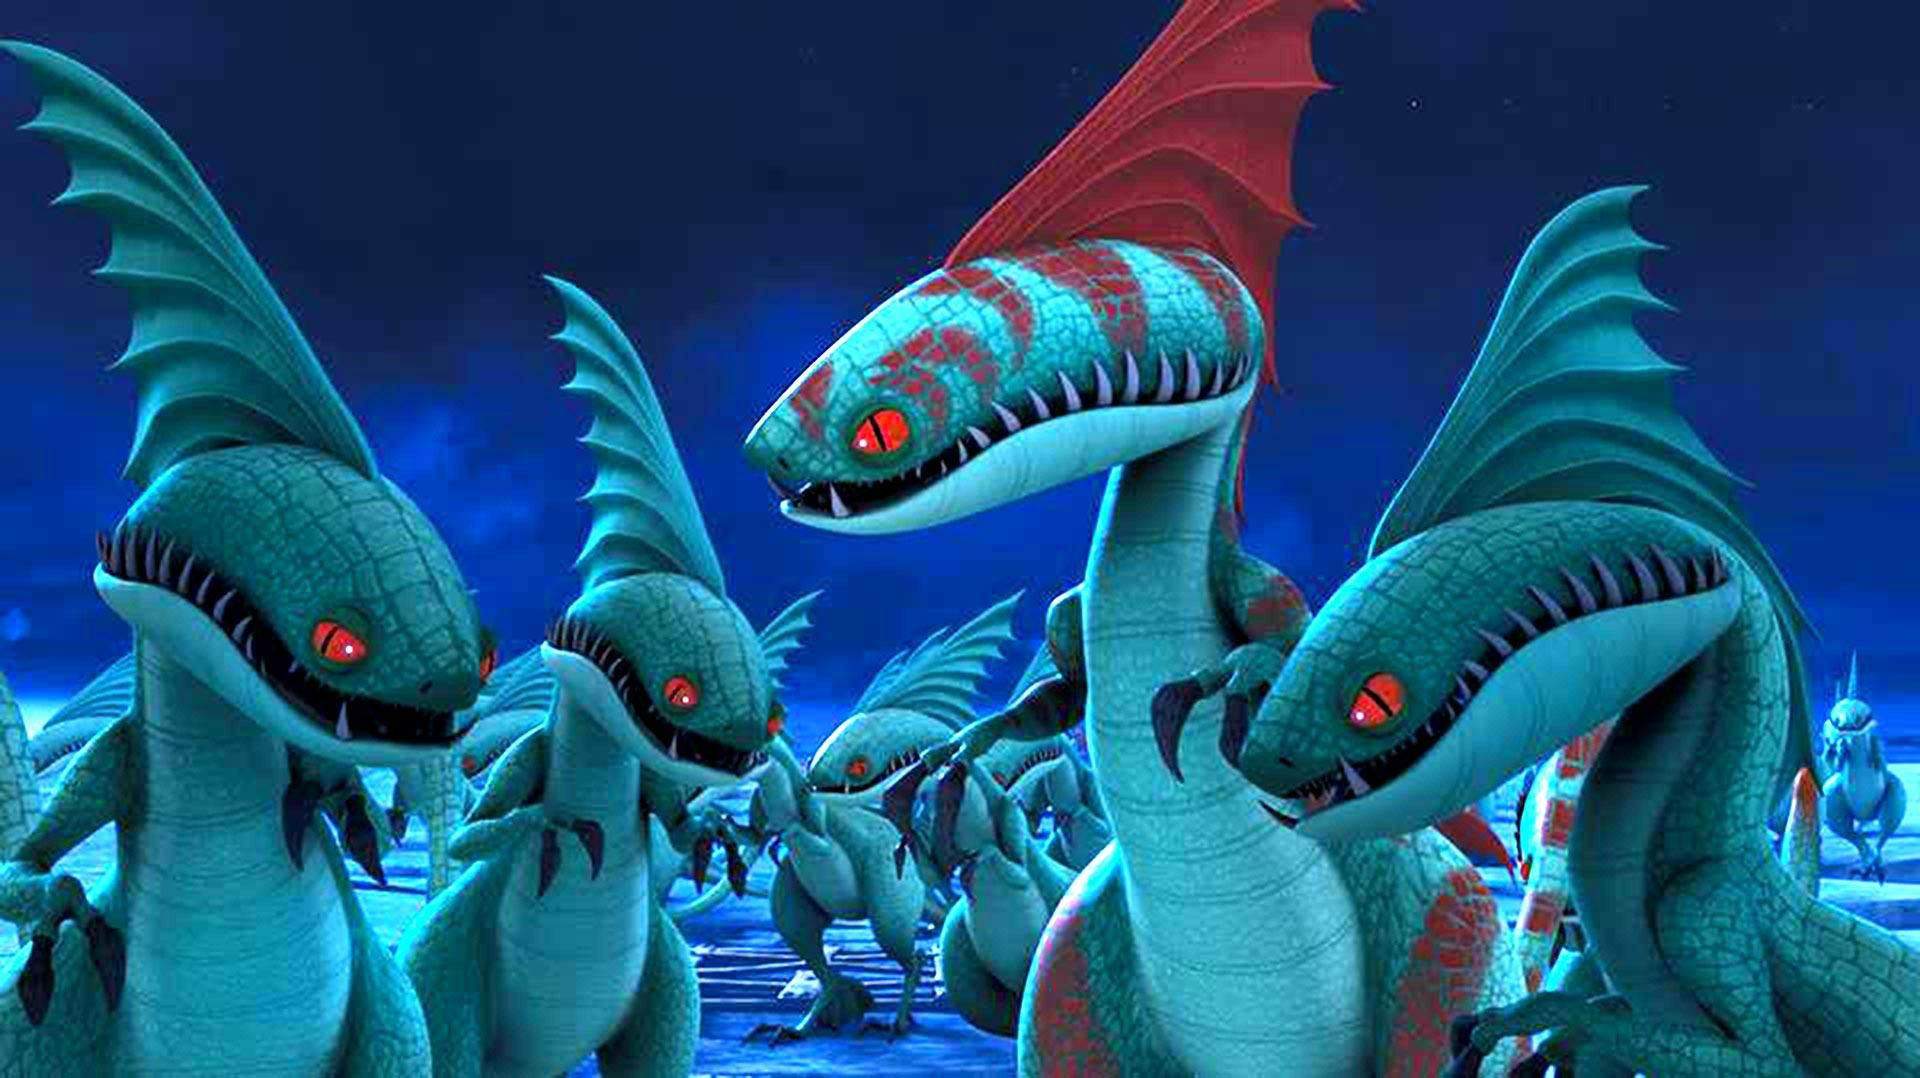 The dragons how to train your dragon 2 hd wallpaper http the dragons how to train your dragon 2 hd wallpaper http ccuart Image collections